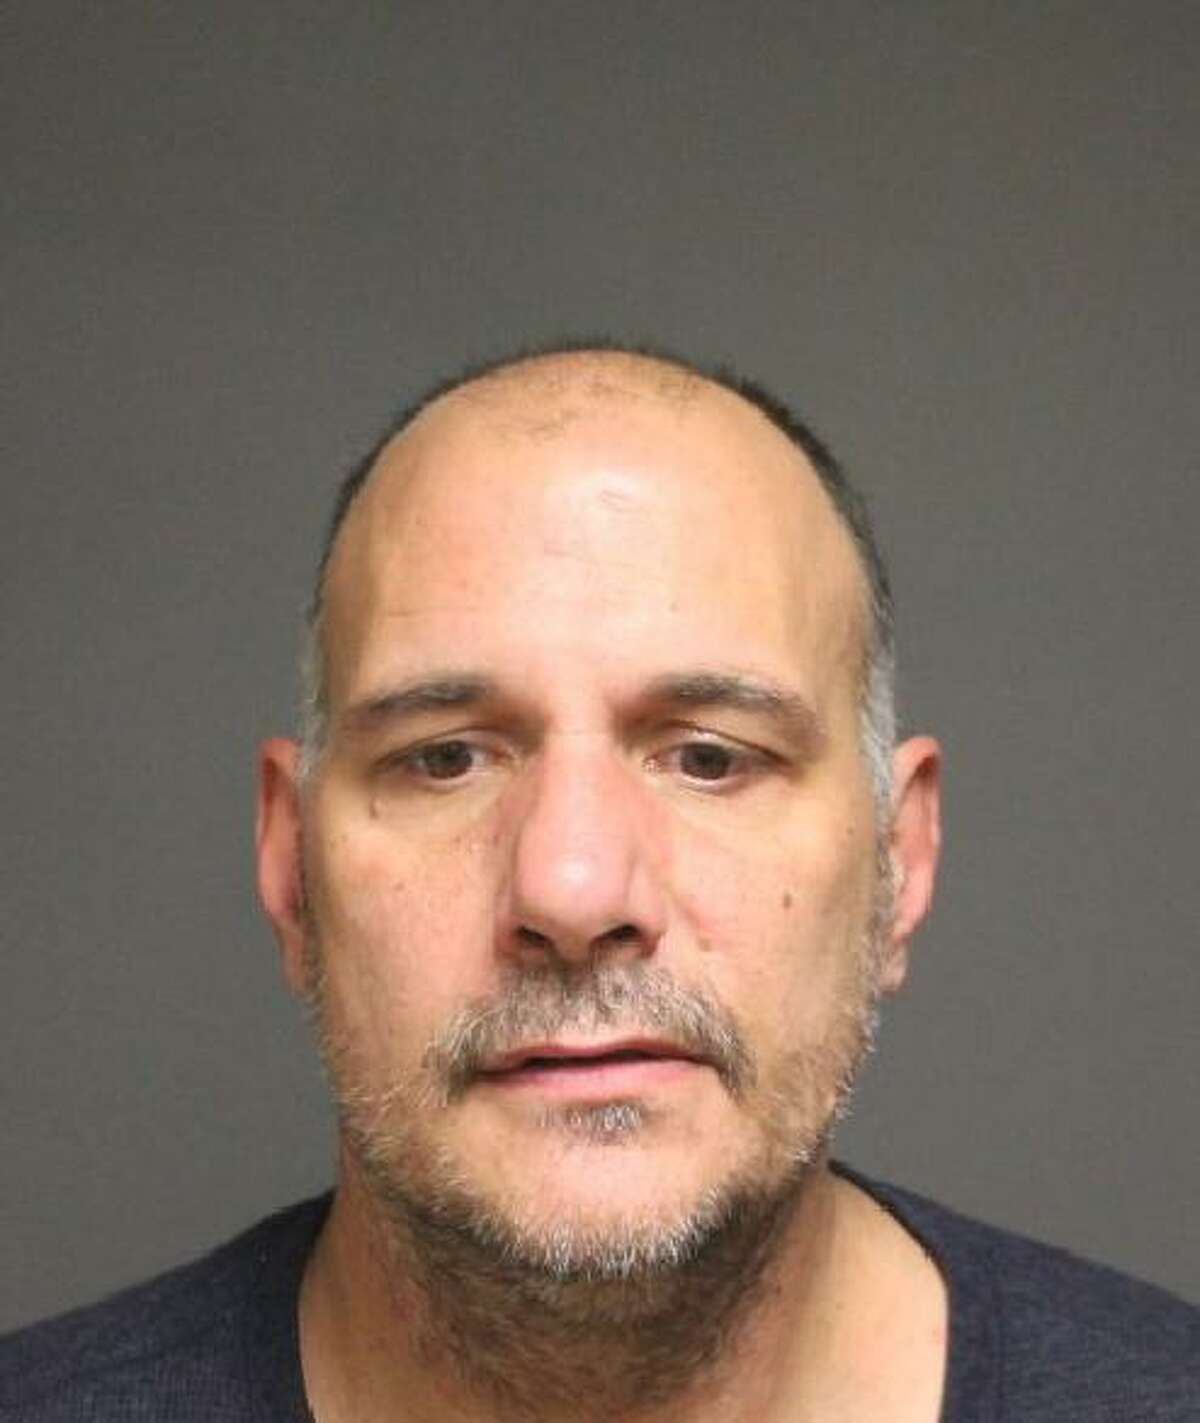 Anthony Macaluso, 49, of Shelton, was charged with sixth-degree larceny in Fairfield, Conn. on Dec. 17, 2016.